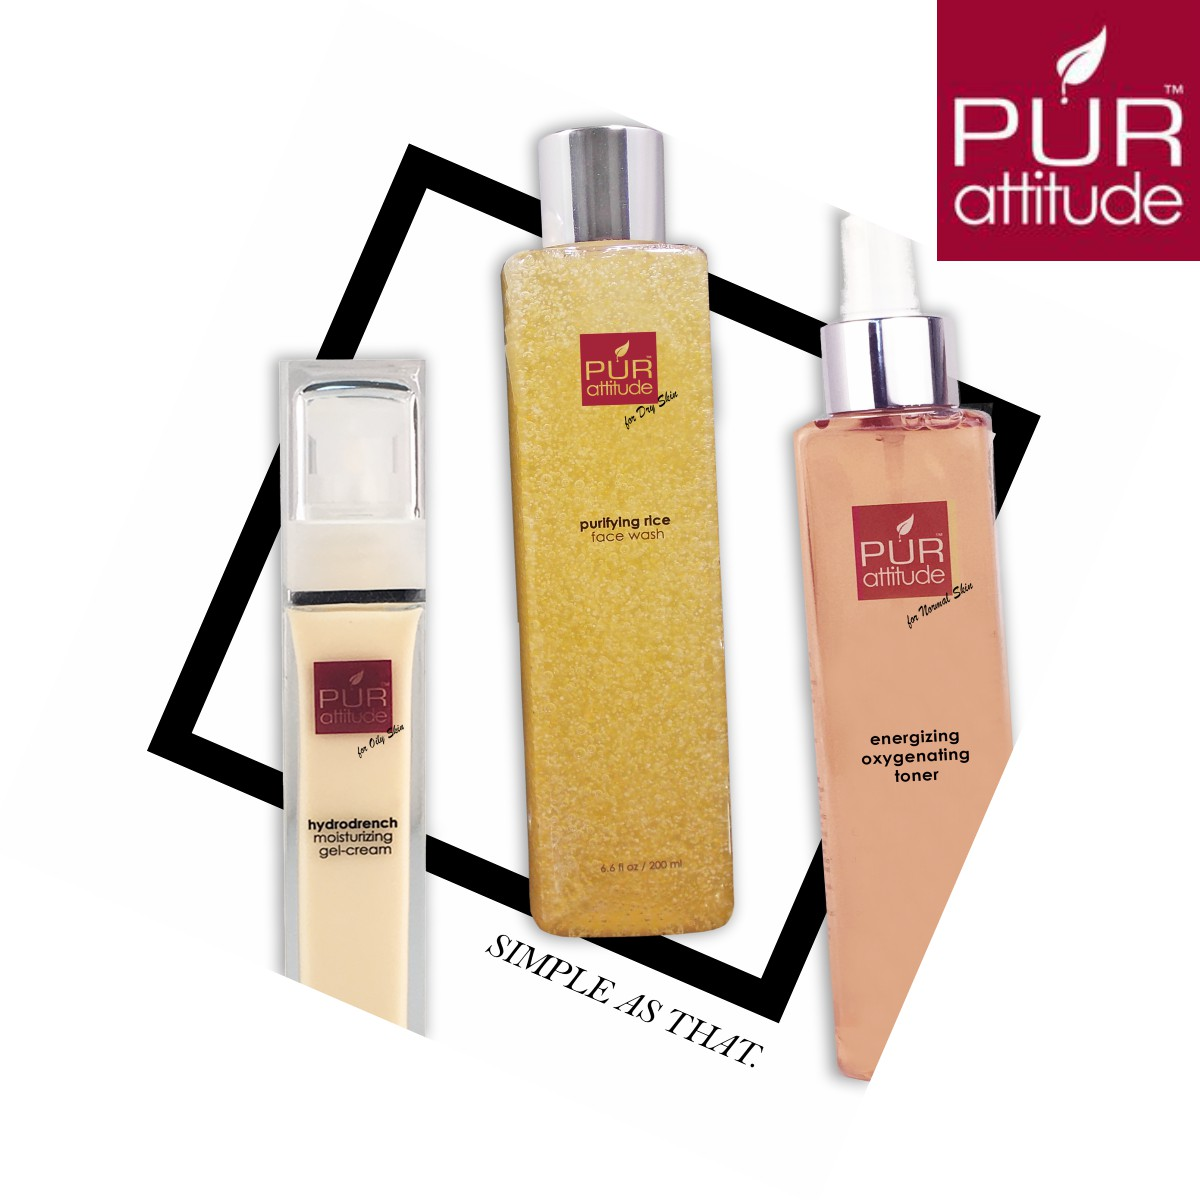 Get young, glowing and smooth skin with PUR attitude skin care products